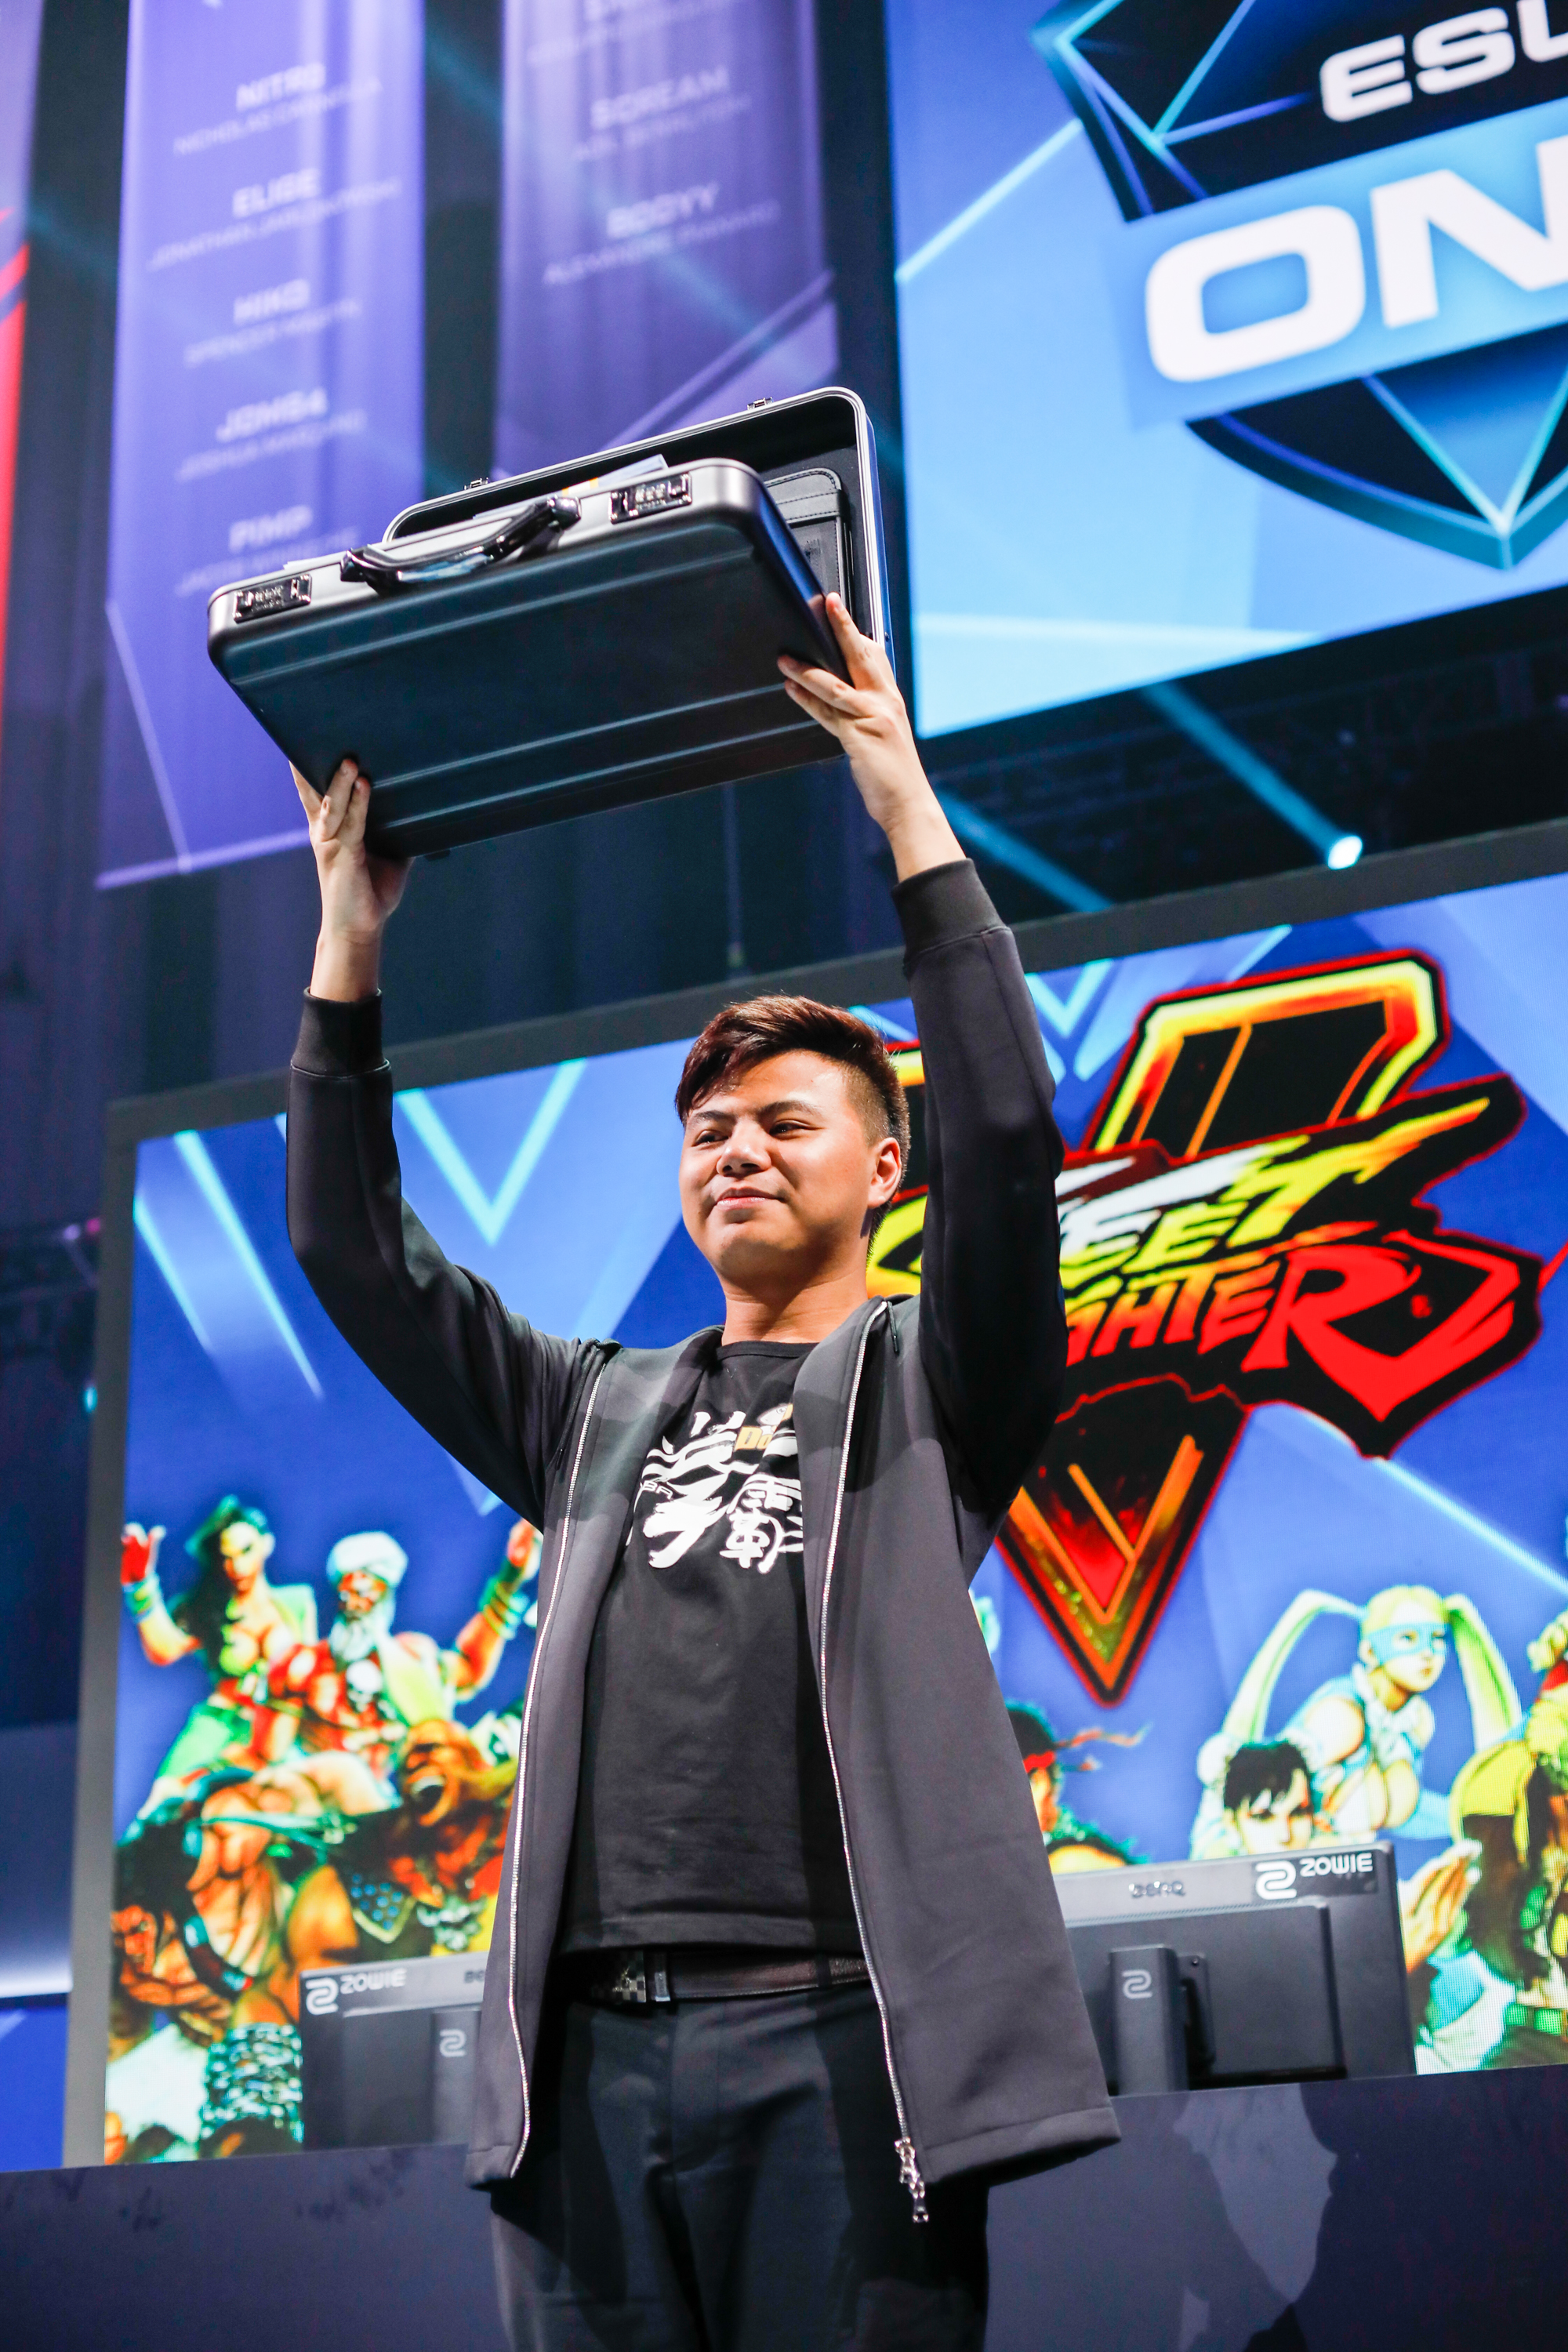 "Zhuojun ""Xiao Hai"" Zeng holds up his prize: a briefcase filled with $30,000.00 cash, the Street Fighter V logo and ESL branding are visible behind him."